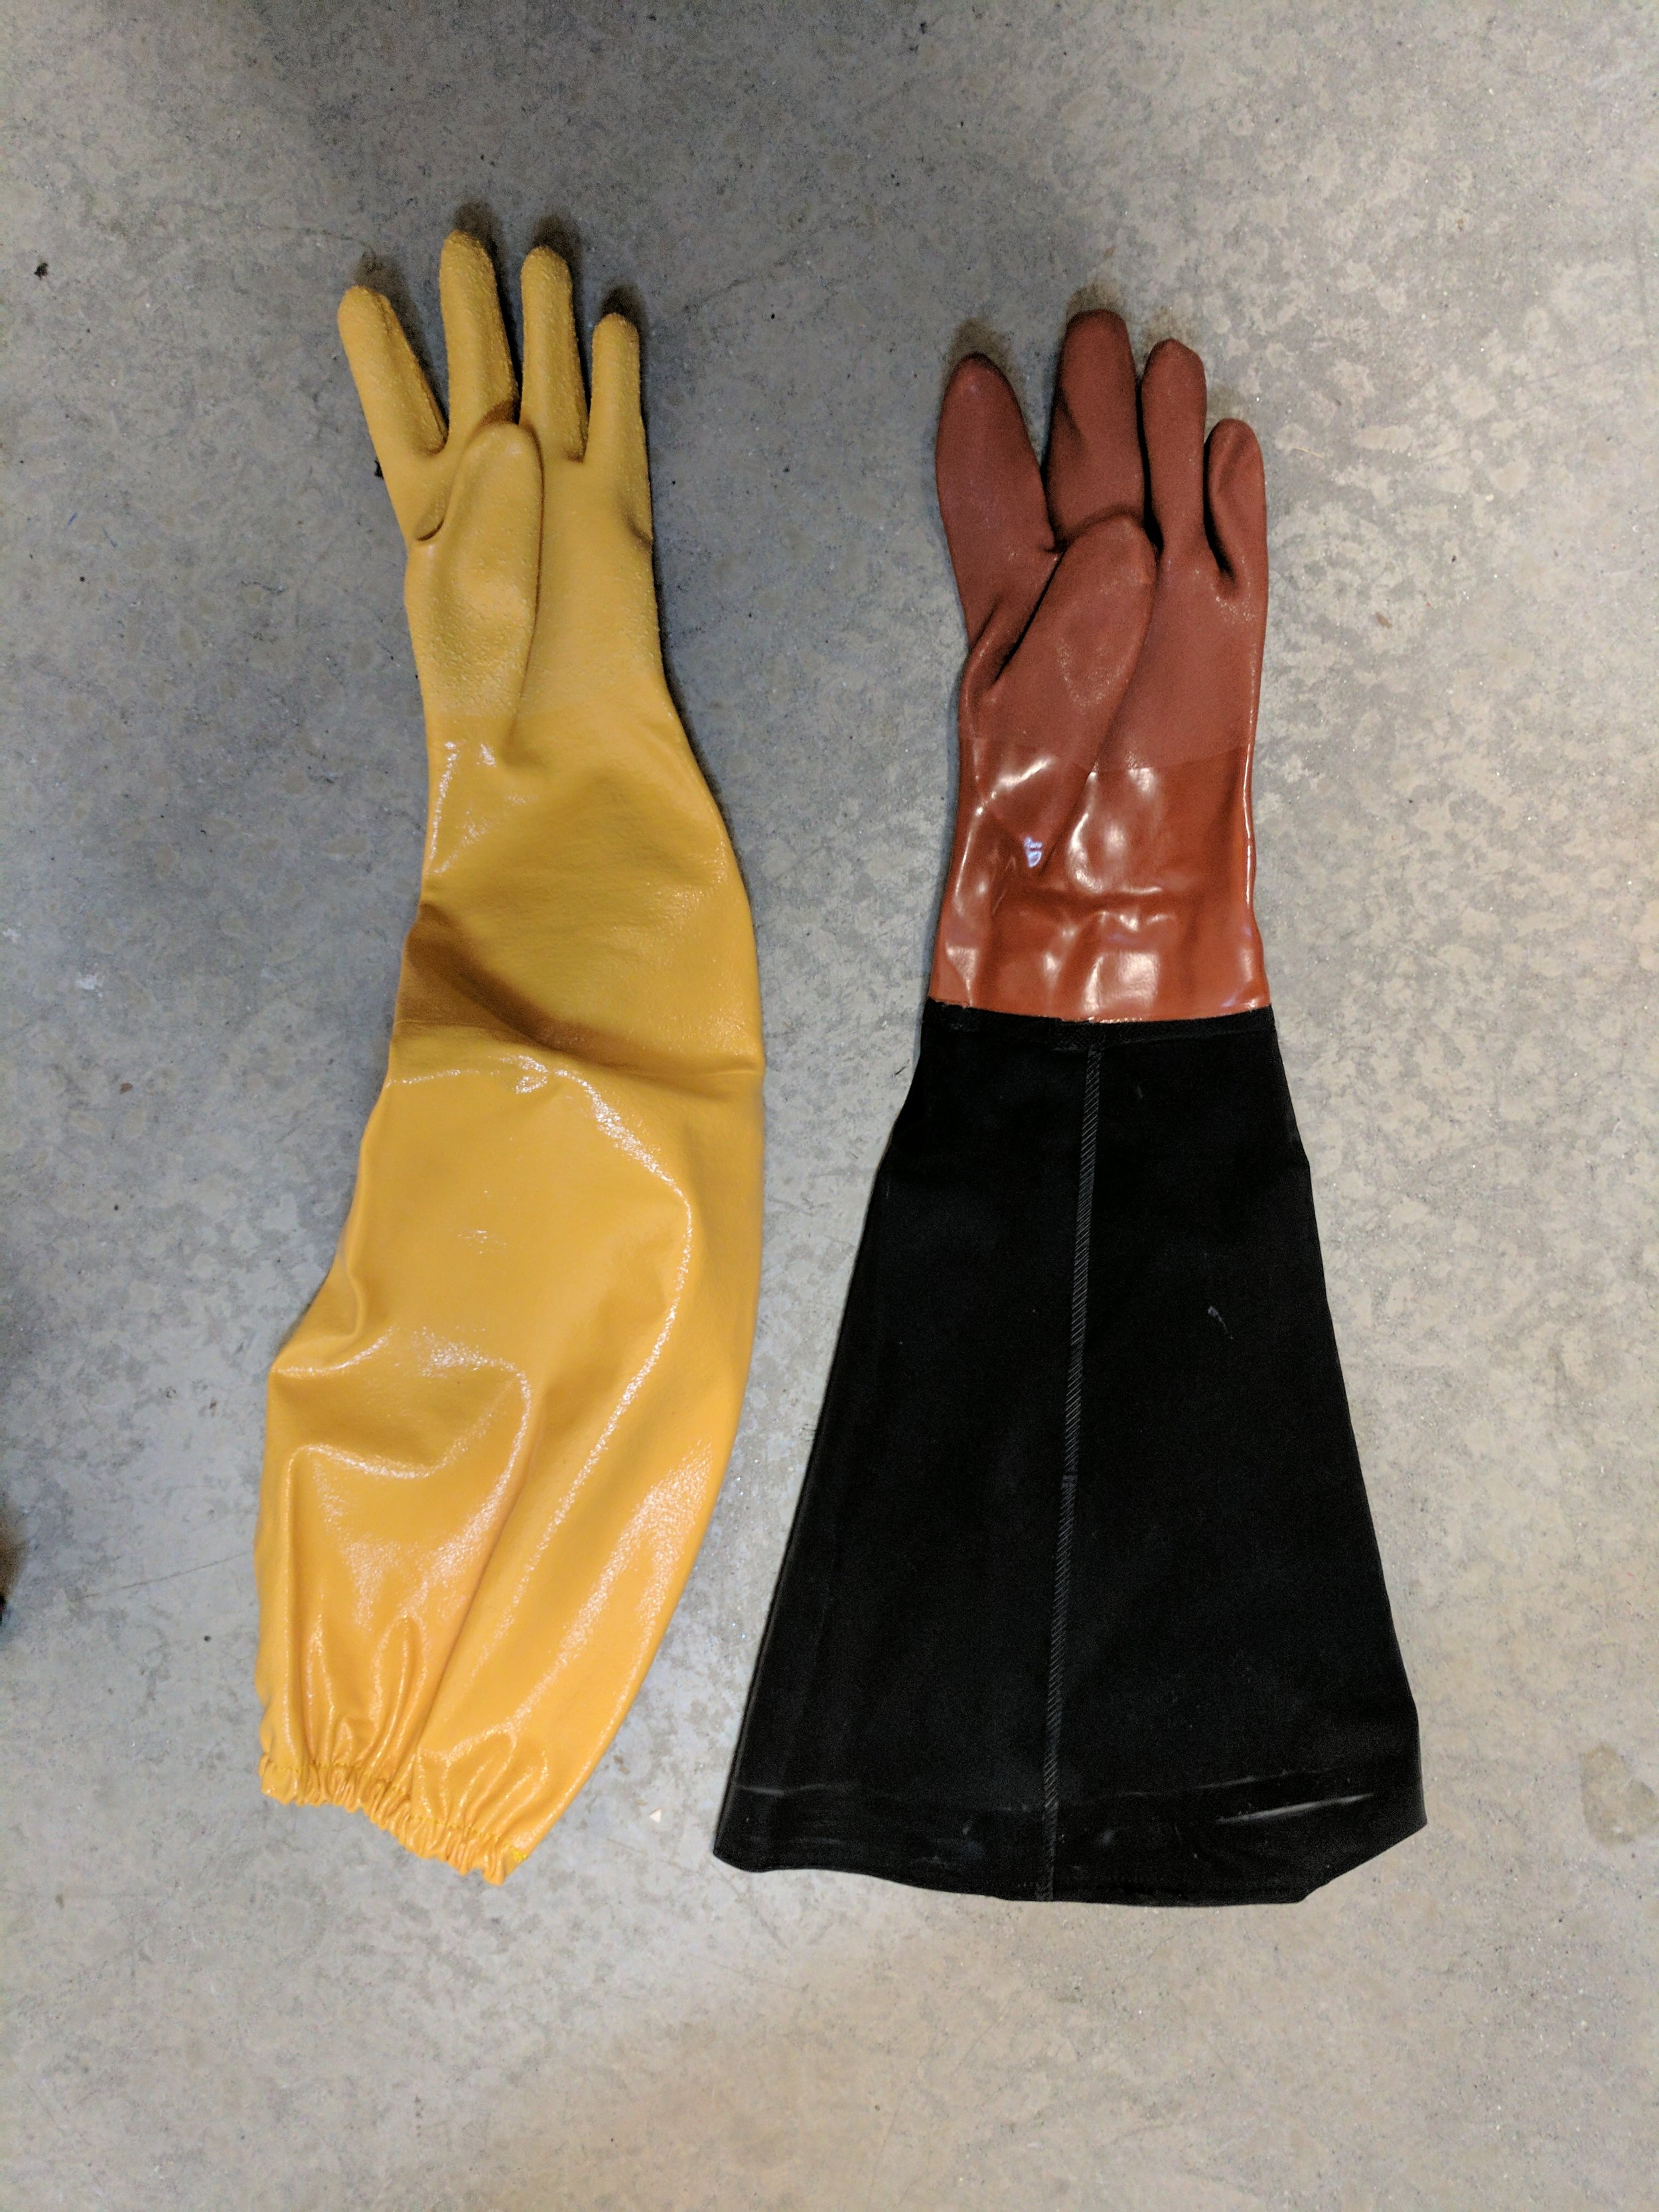 Left: Showa elbow-length nitrile gloves. Right: The gloves provided in the chamber kit.